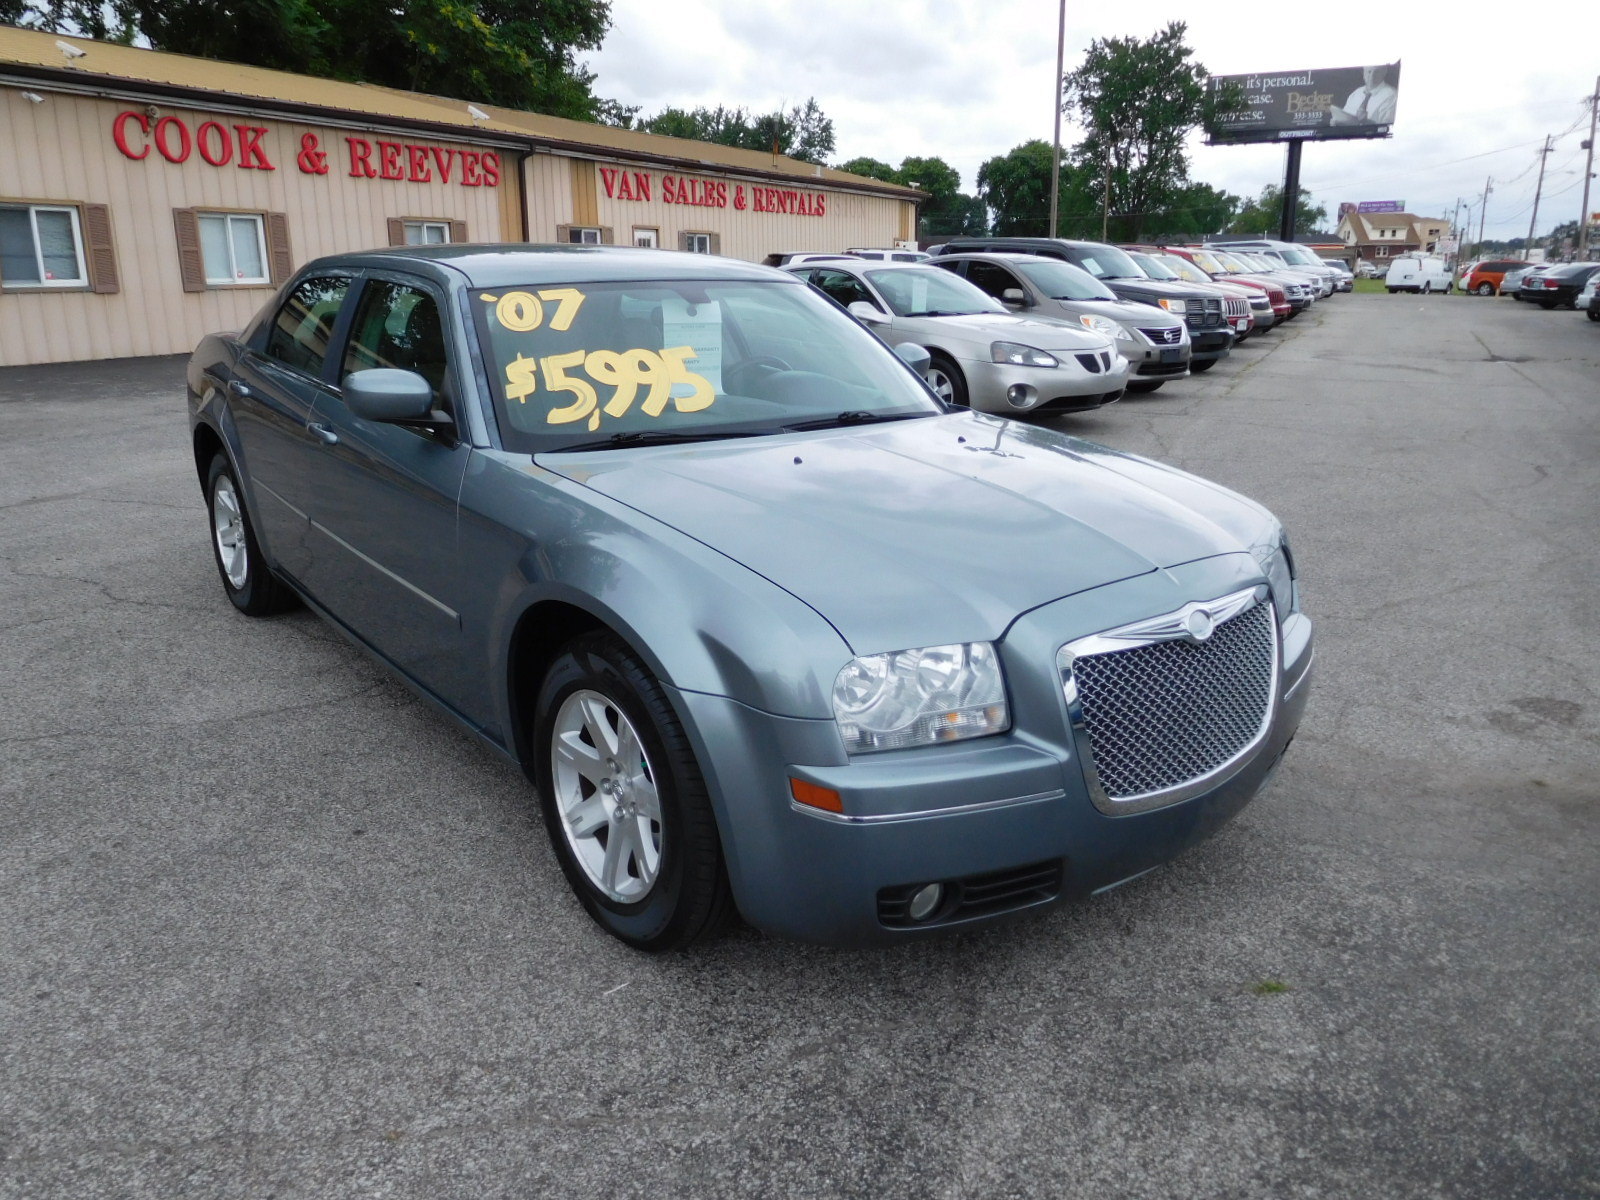 07 CHRYSLER 300 TOURING